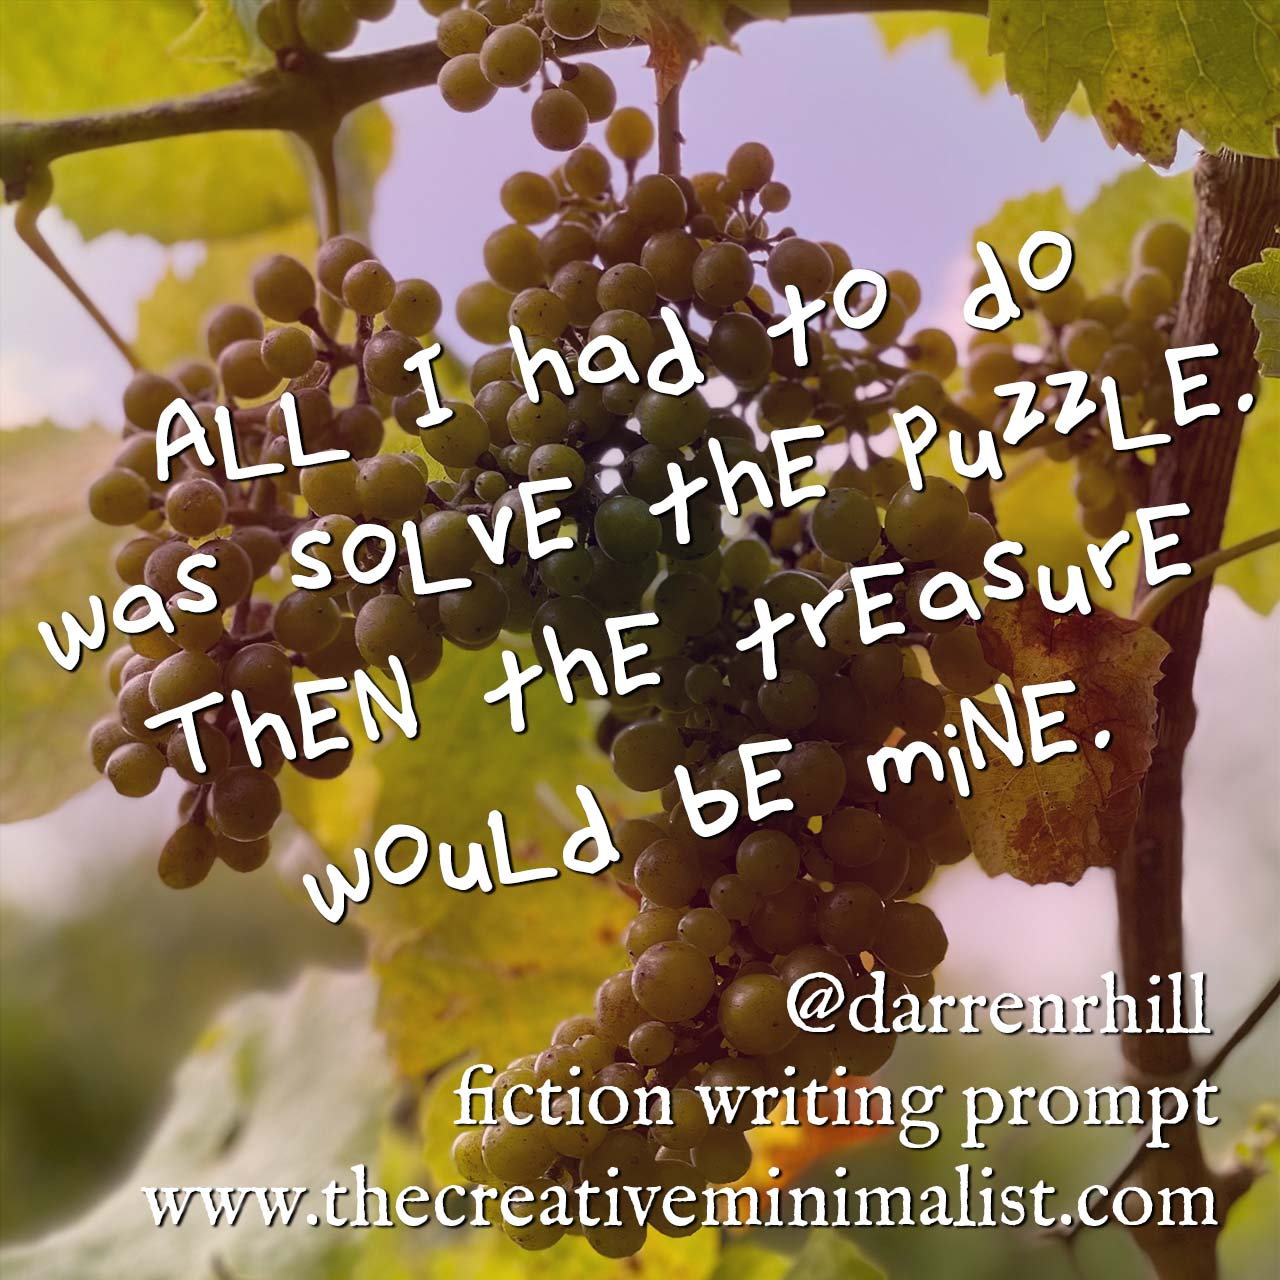 All I had to do was solve the puzzle. Then the treasure would be mine. - fiction writing prompt